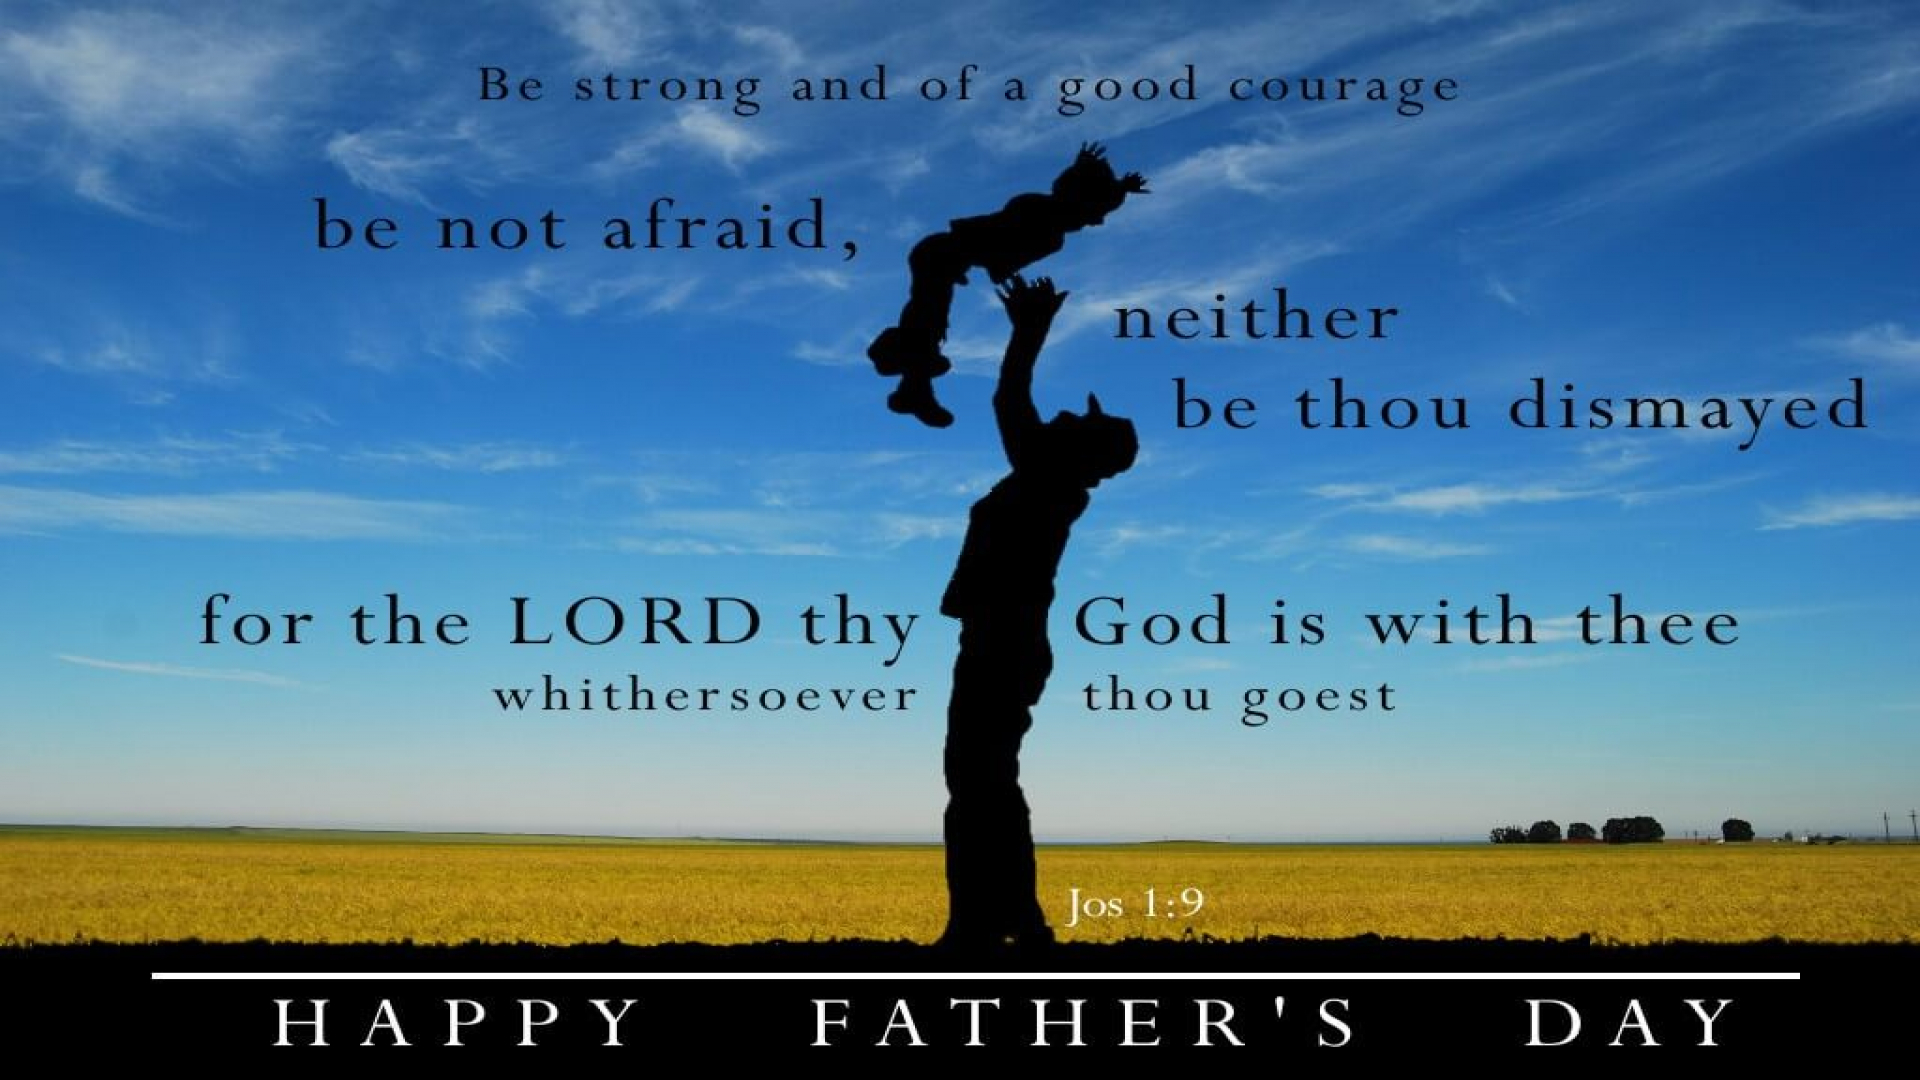 Happy Fathers Day Hd Bible Verse Wallpaper Jos 1 9